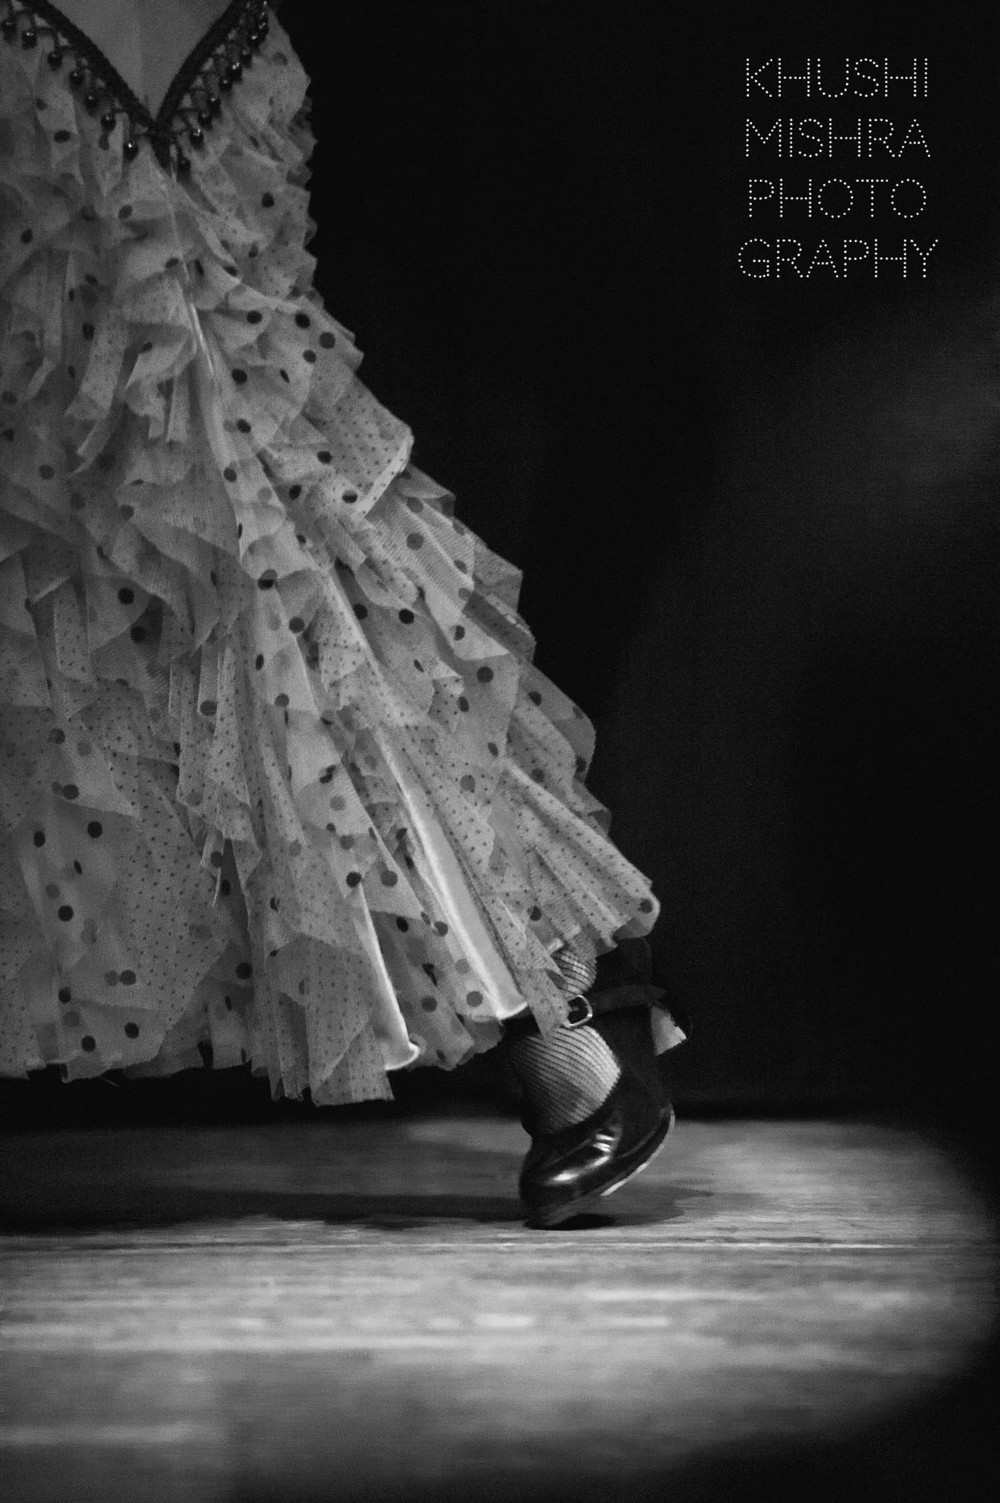 Flamenco_dsc_7926 copy.jpg